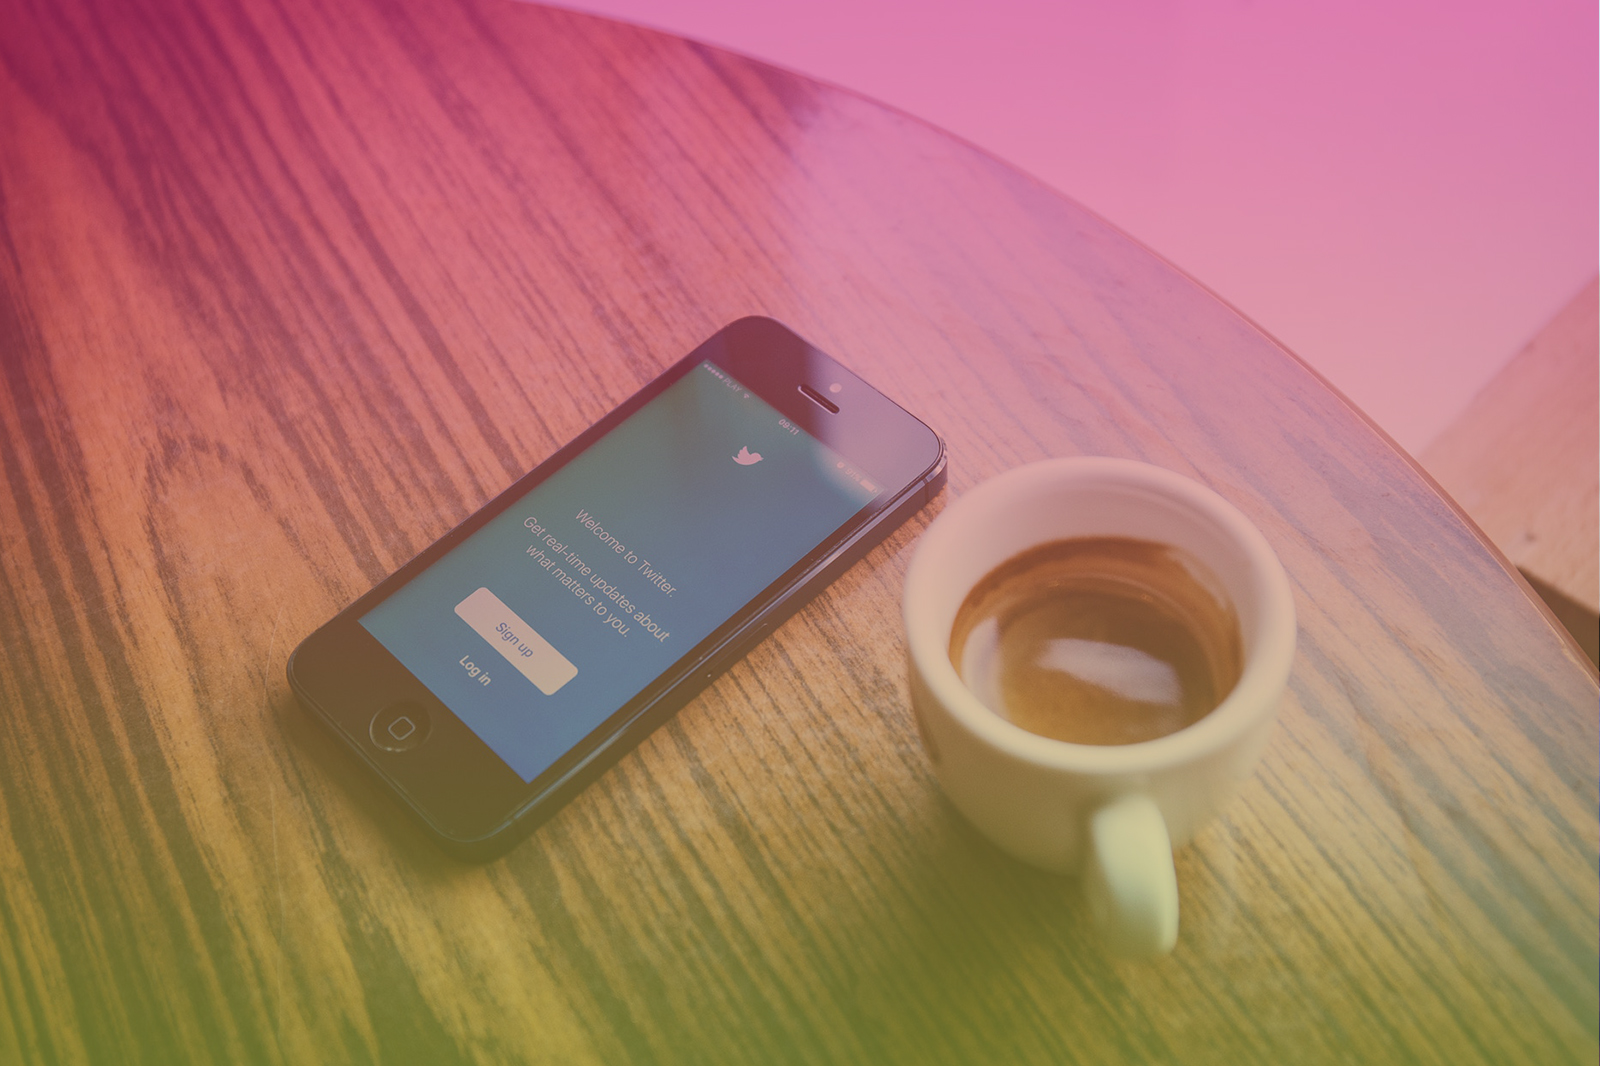 Twitter Marketing Updates—What it Means for Digital Marketing